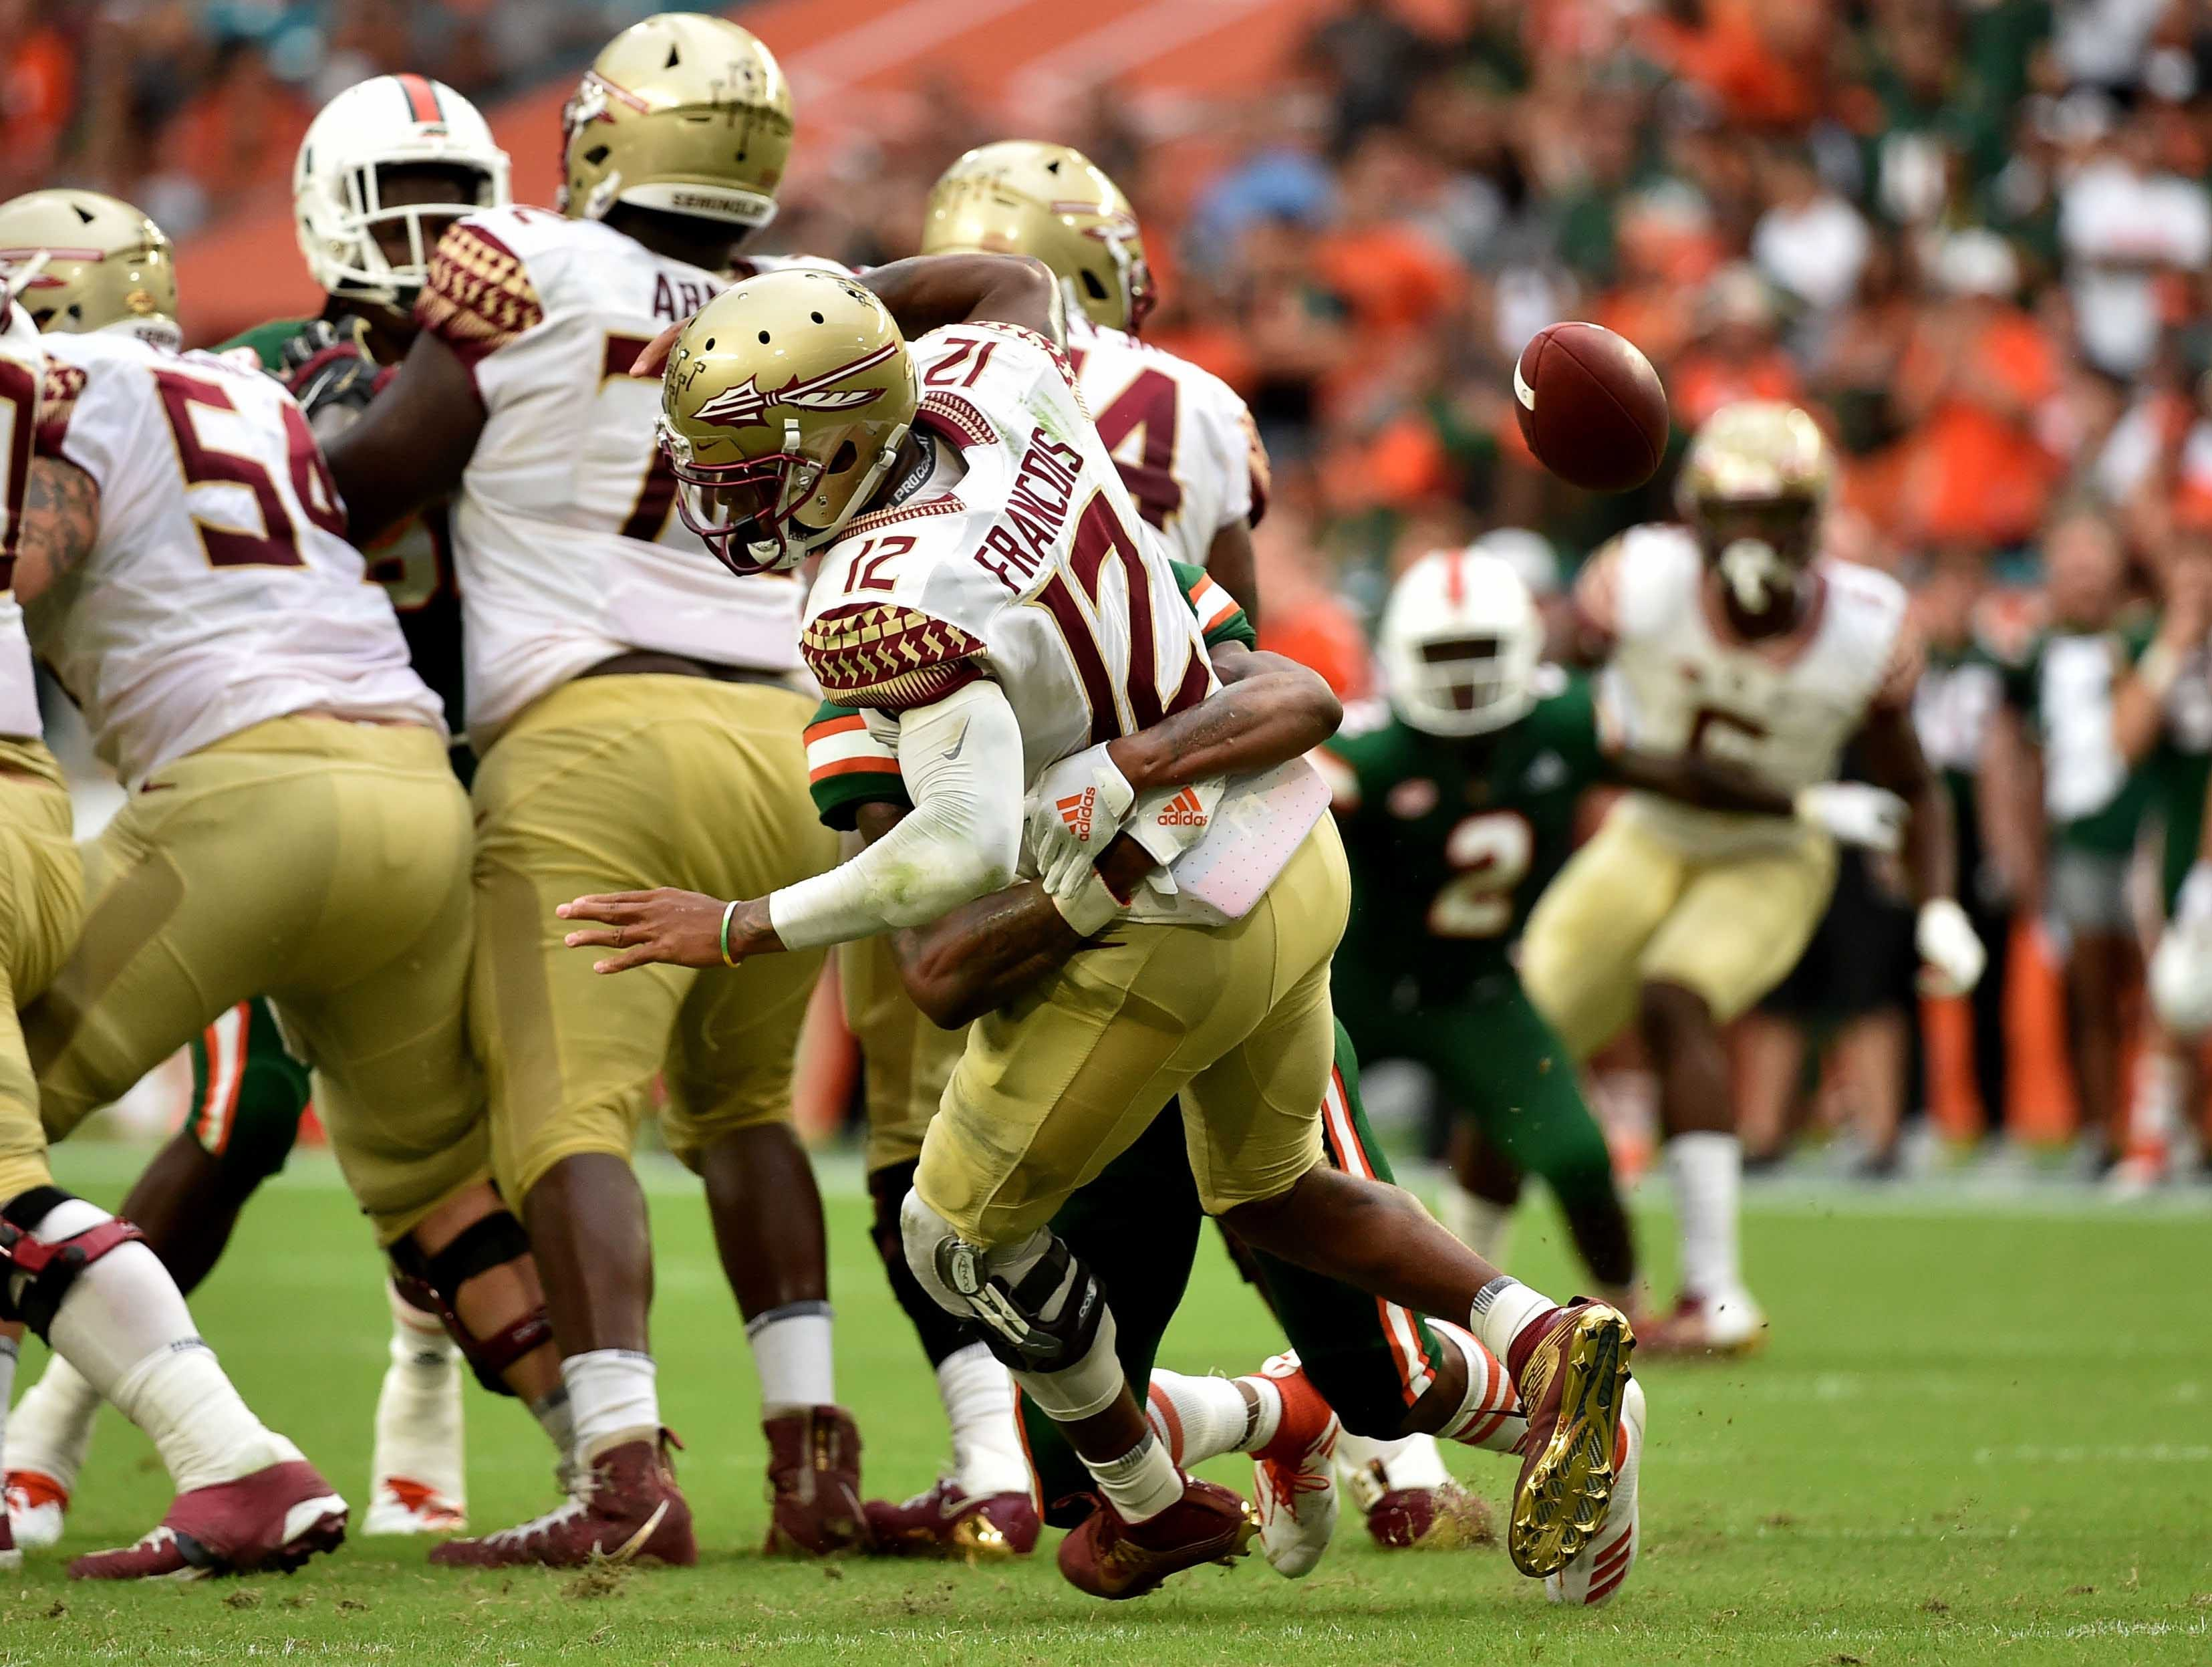 Oct 6, 2018; Miami Gardens, FL, USA; Miami Hurricanes defensive back Sheldrick Redwine (22) sacks Florida State Seminoles quarterback Deondre Francois (12) for a fumble during the second half at Hard Rock Stadium. Mandatory Credit: Steve Mitchell-USA TODAY Sports